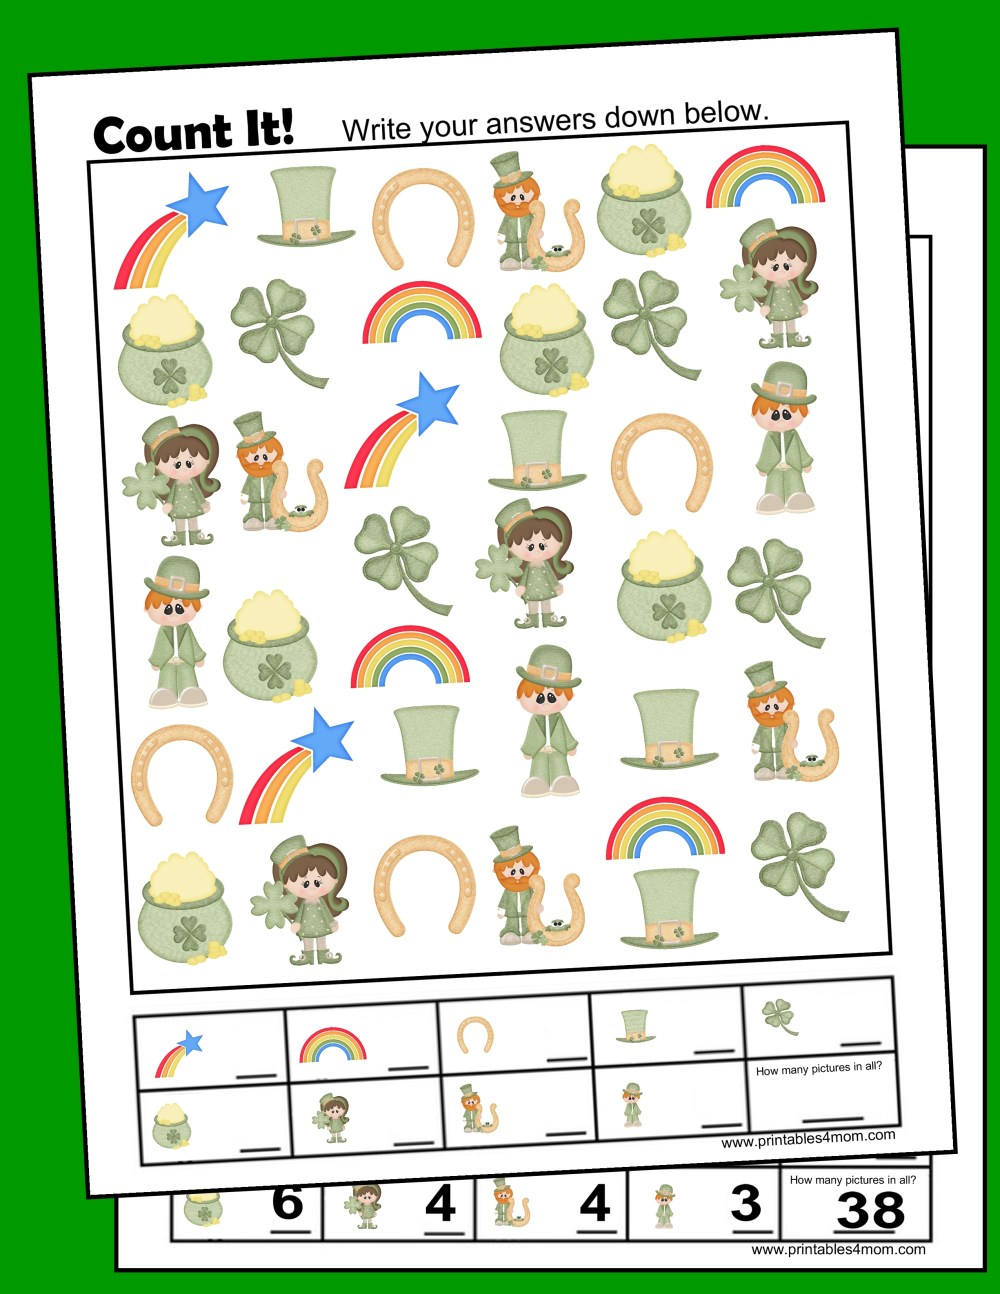 medium resolution of St. Patrick's Day I Spy Counting Game - Printables 4 Mom